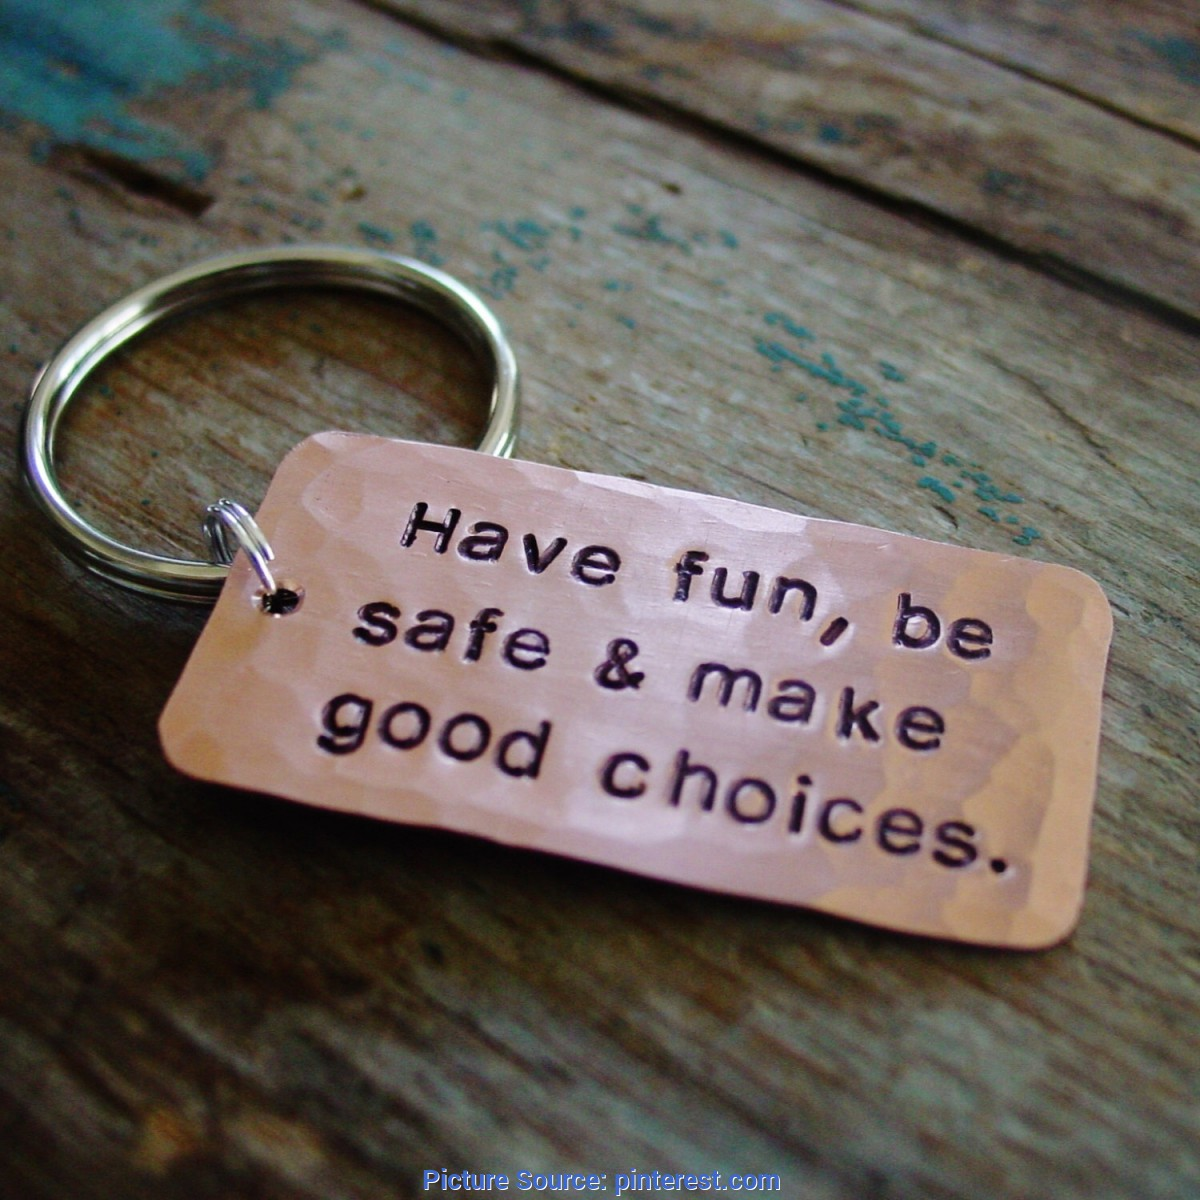 Interesting How To Make Good Choices Make Good Choices Keychain, Son Gift, Daughter Gift, Going Awa